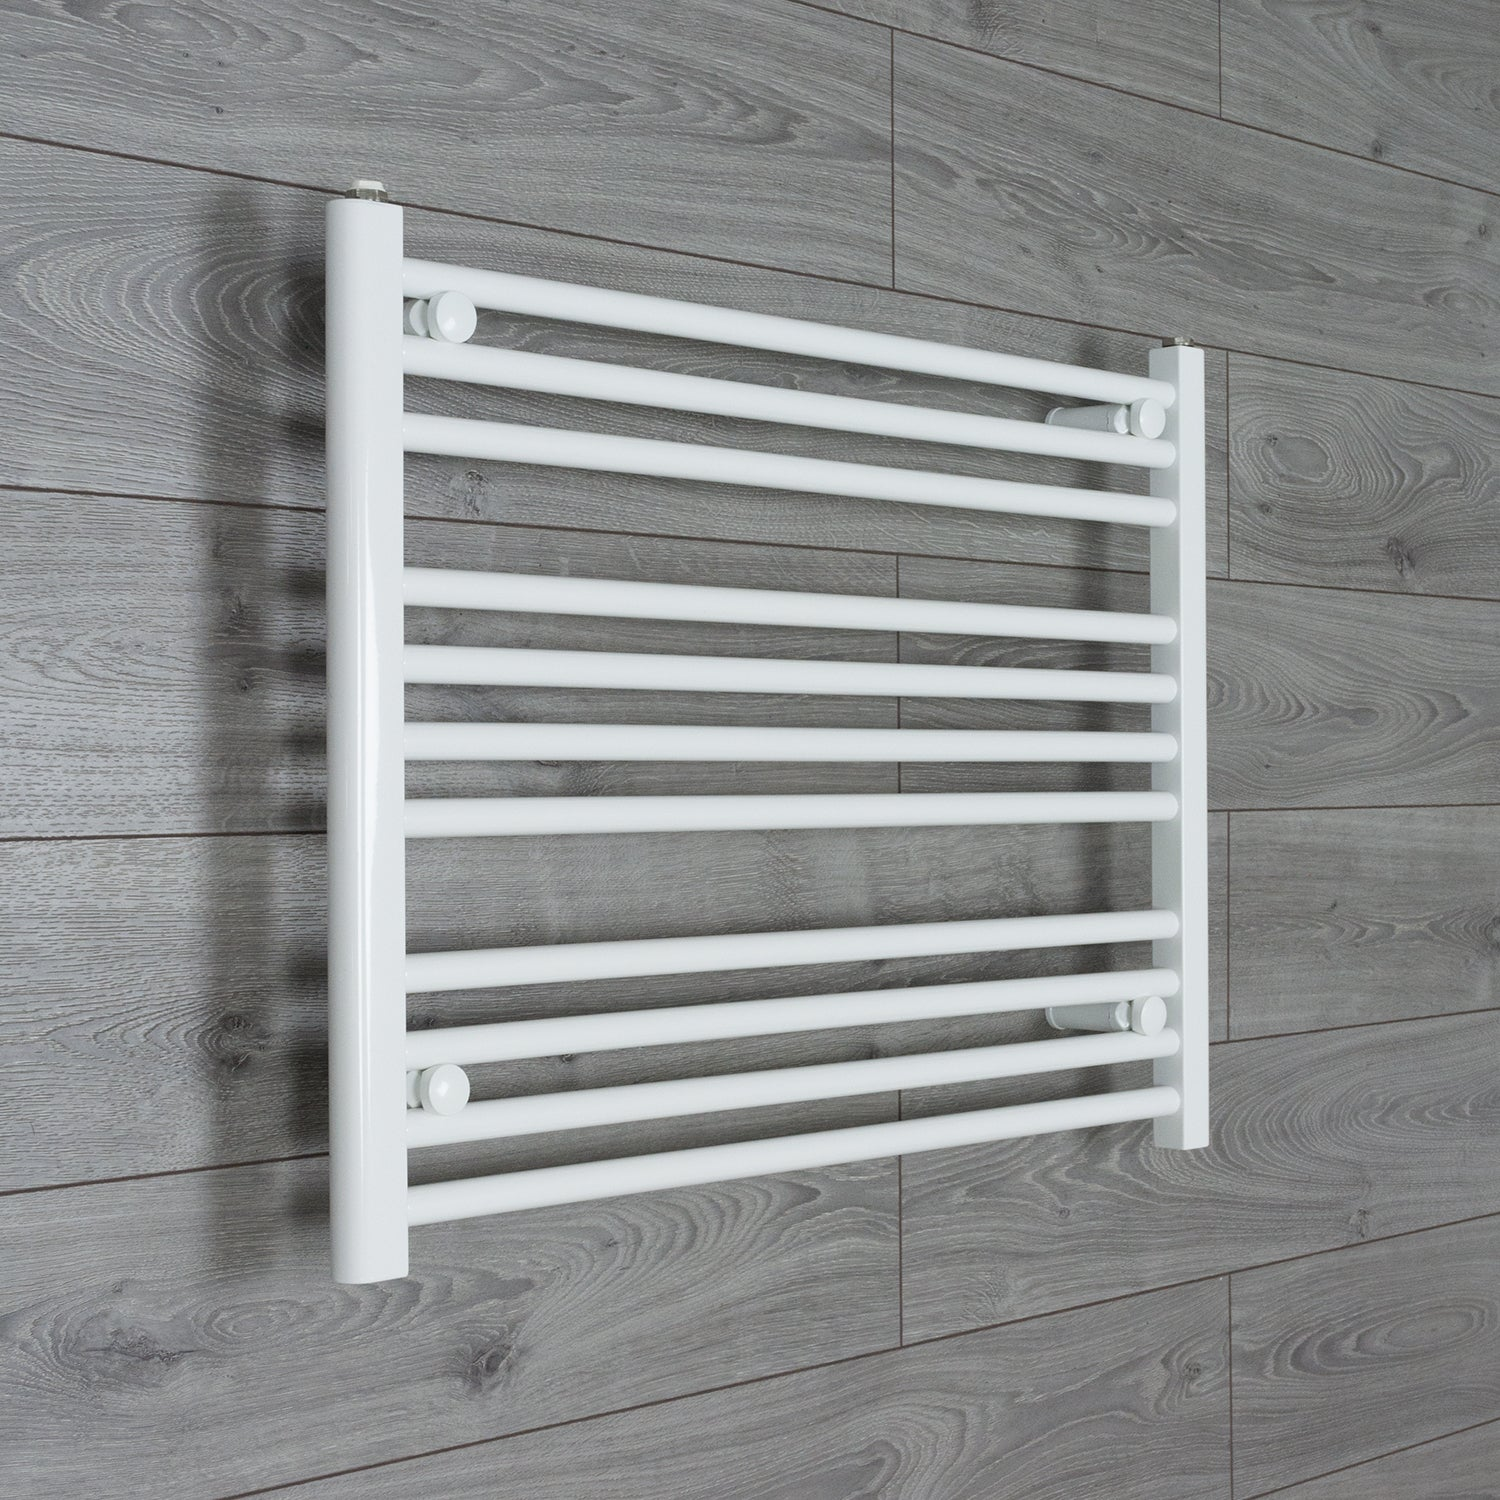 750mm Wide 600mm High Flat WHITE Pre-Filled Electric Heated Towel Rail Radiator HTR